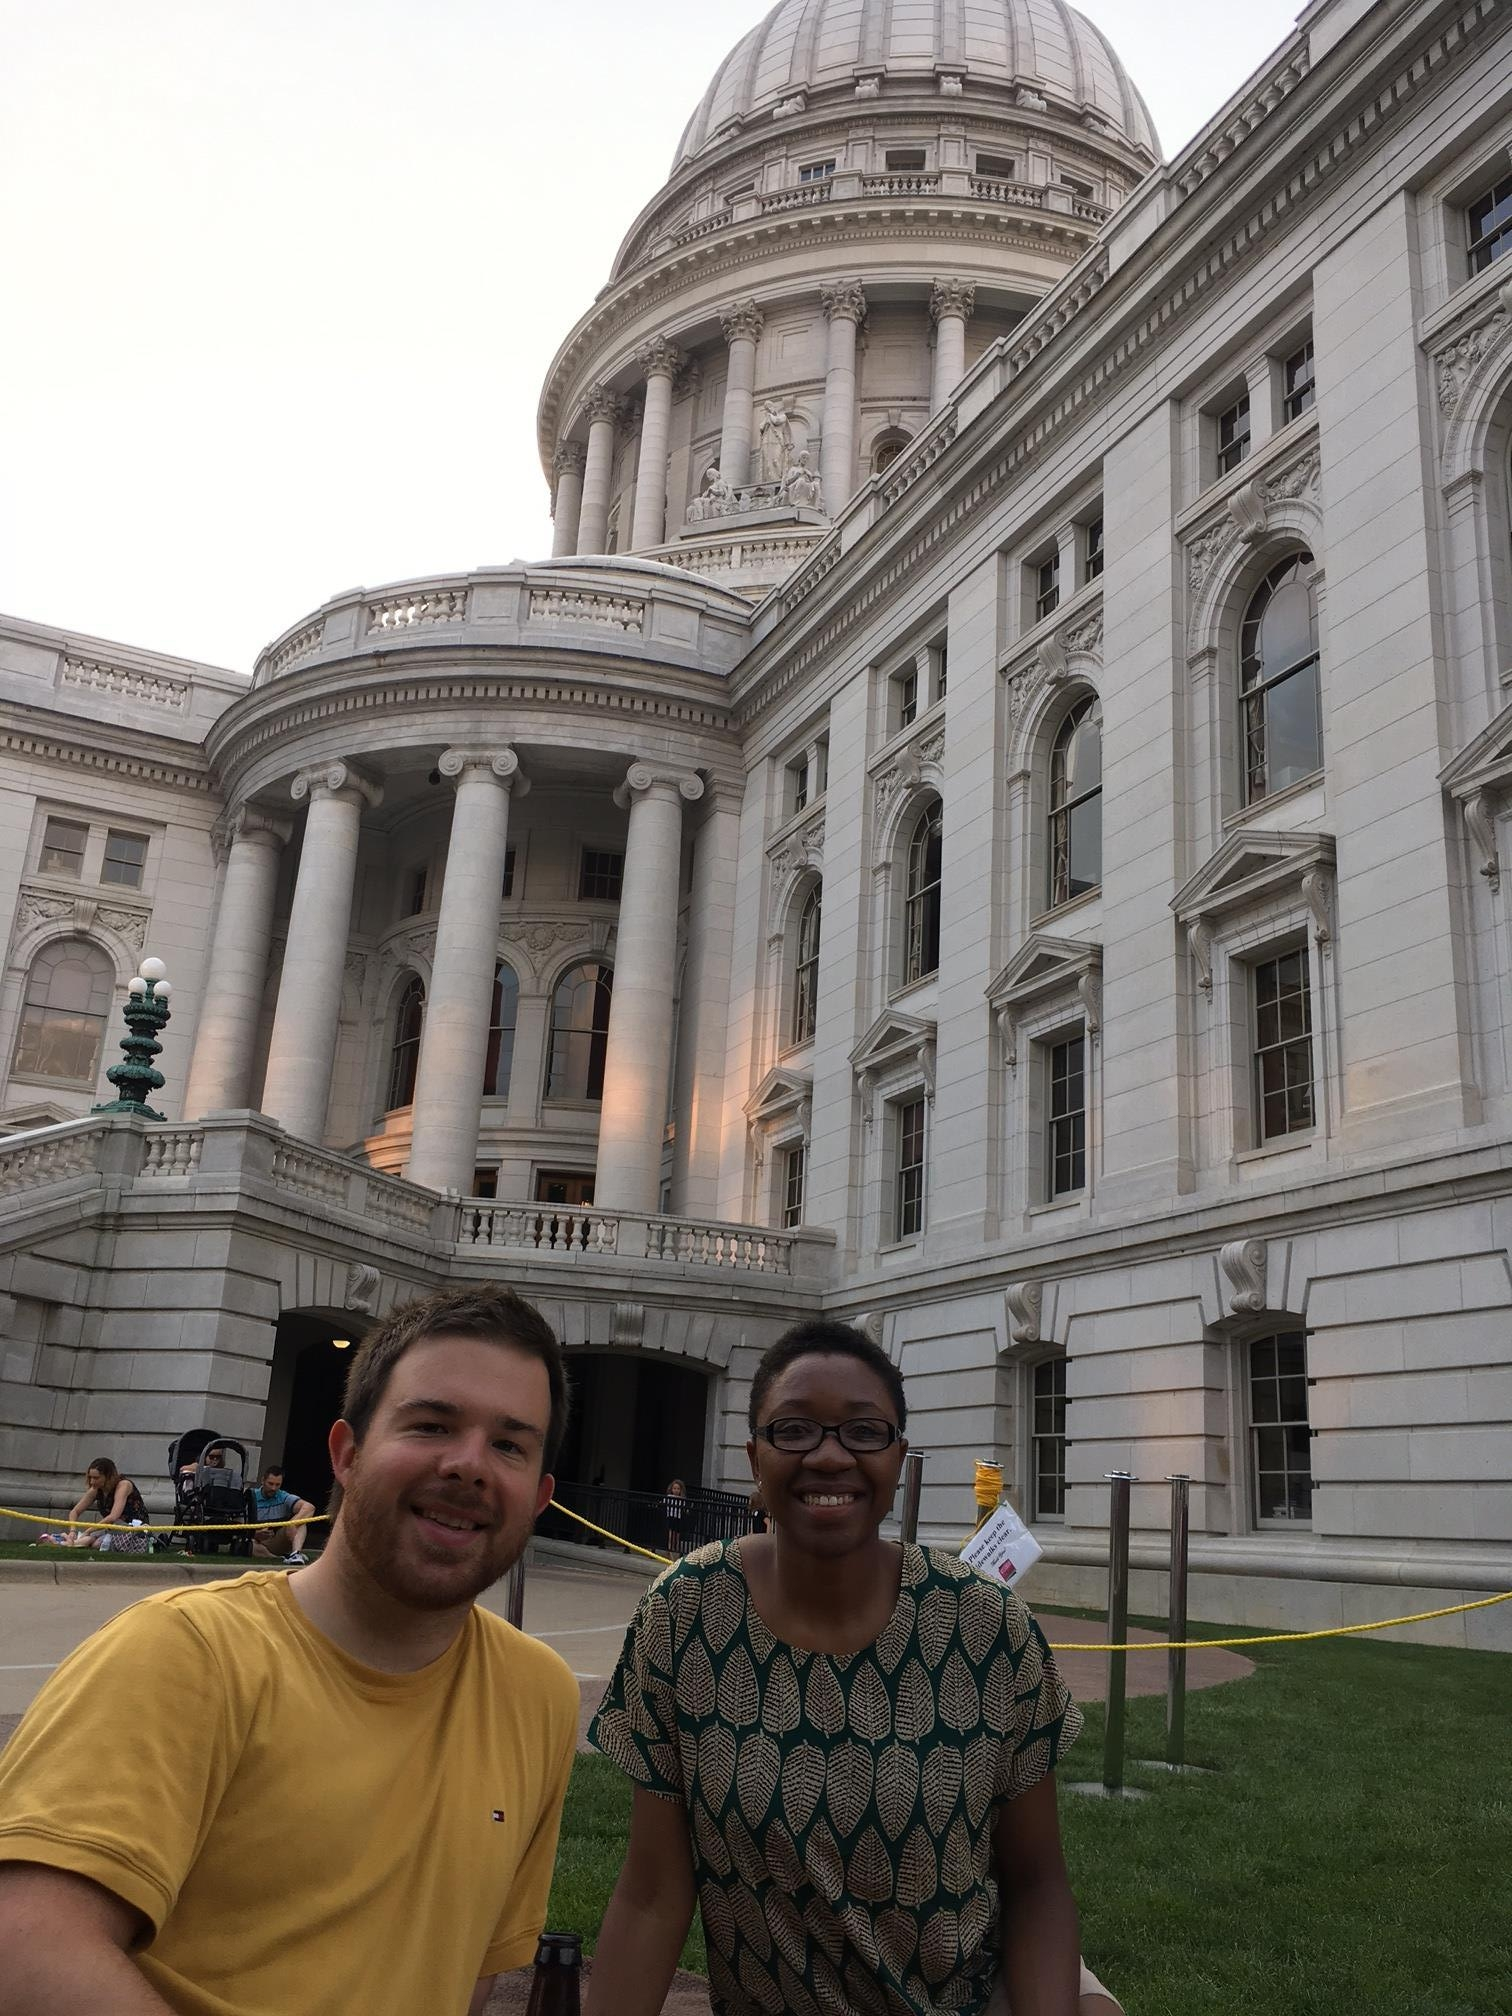 Tiaira and Chris at their first Concert on the Square - Beethoven's 5th!